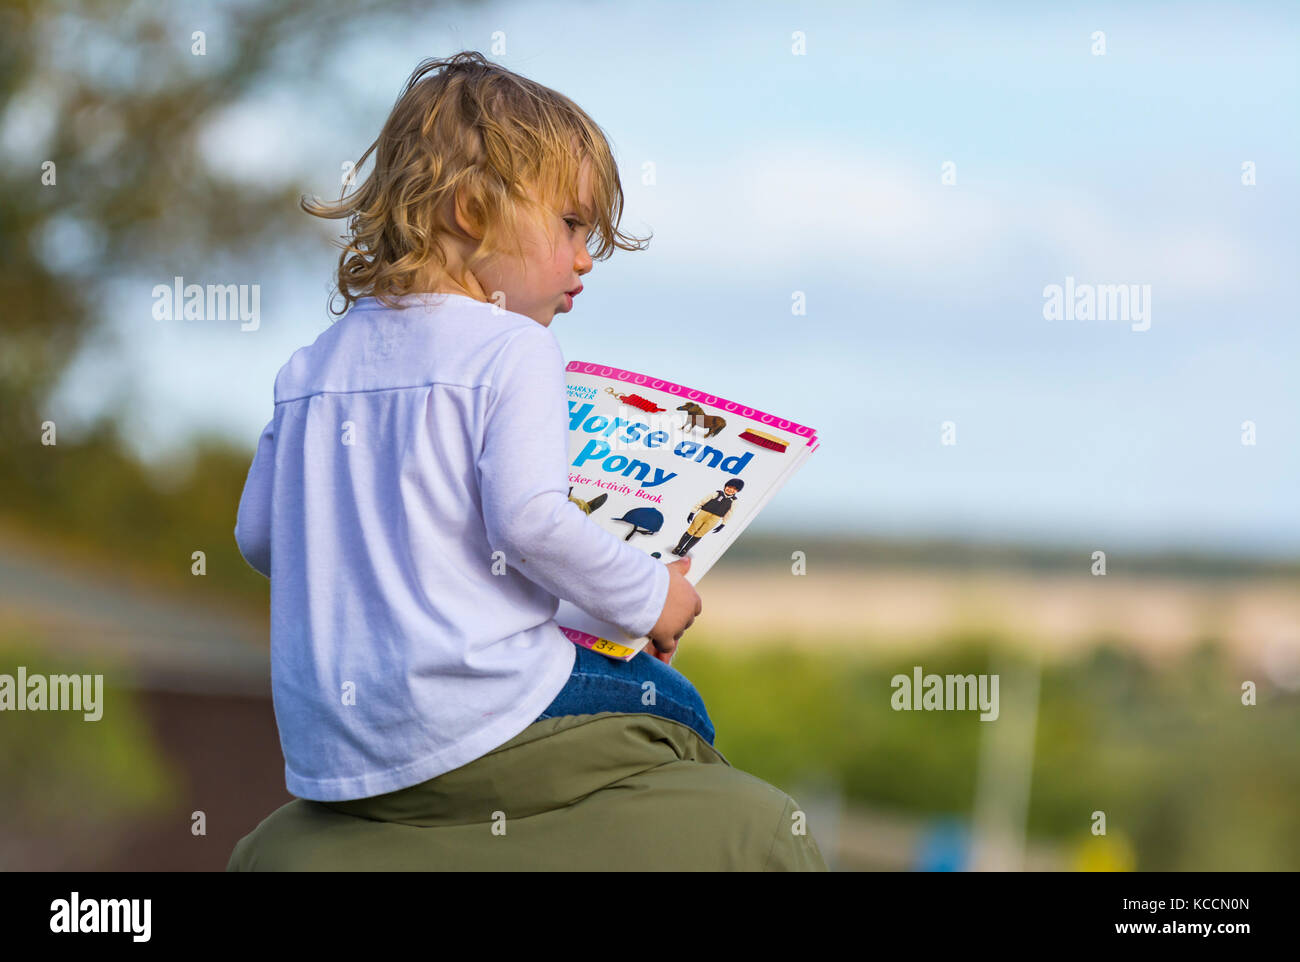 Young girl sitting on someone's shoulders while reading a child's book. - Stock Image